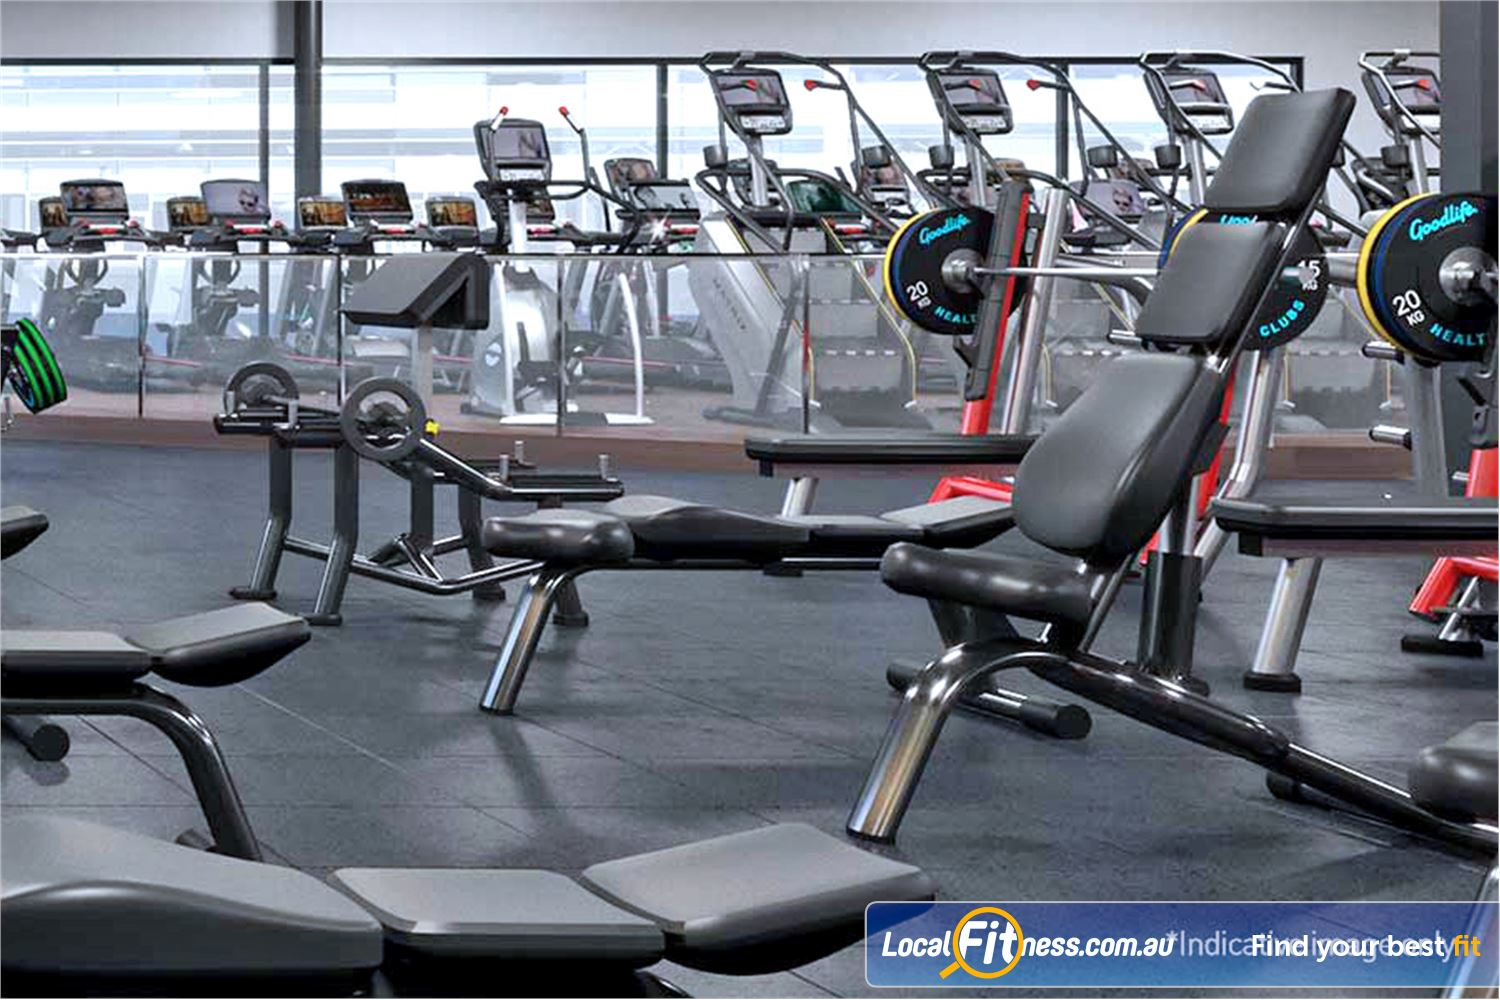 Goodlife Health Clubs Near Seaford Meadows Our Noarlunga gym includes a full range of dumbbells.